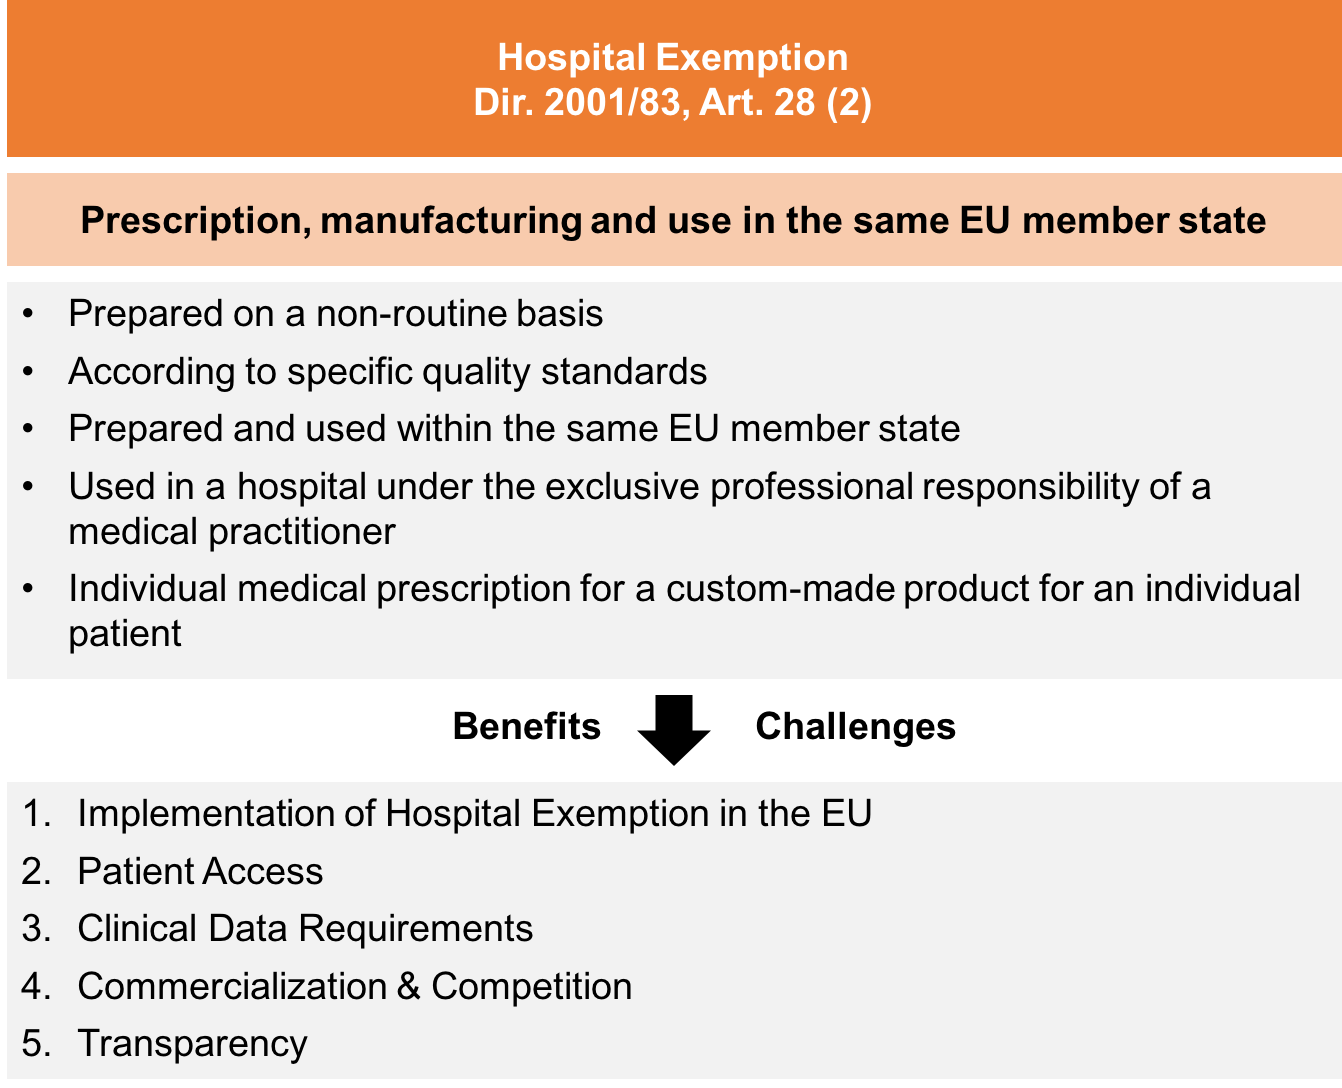 Figure        SEQ Figure \* ARABIC     1      : Summary of hospital exemption requirements and implications